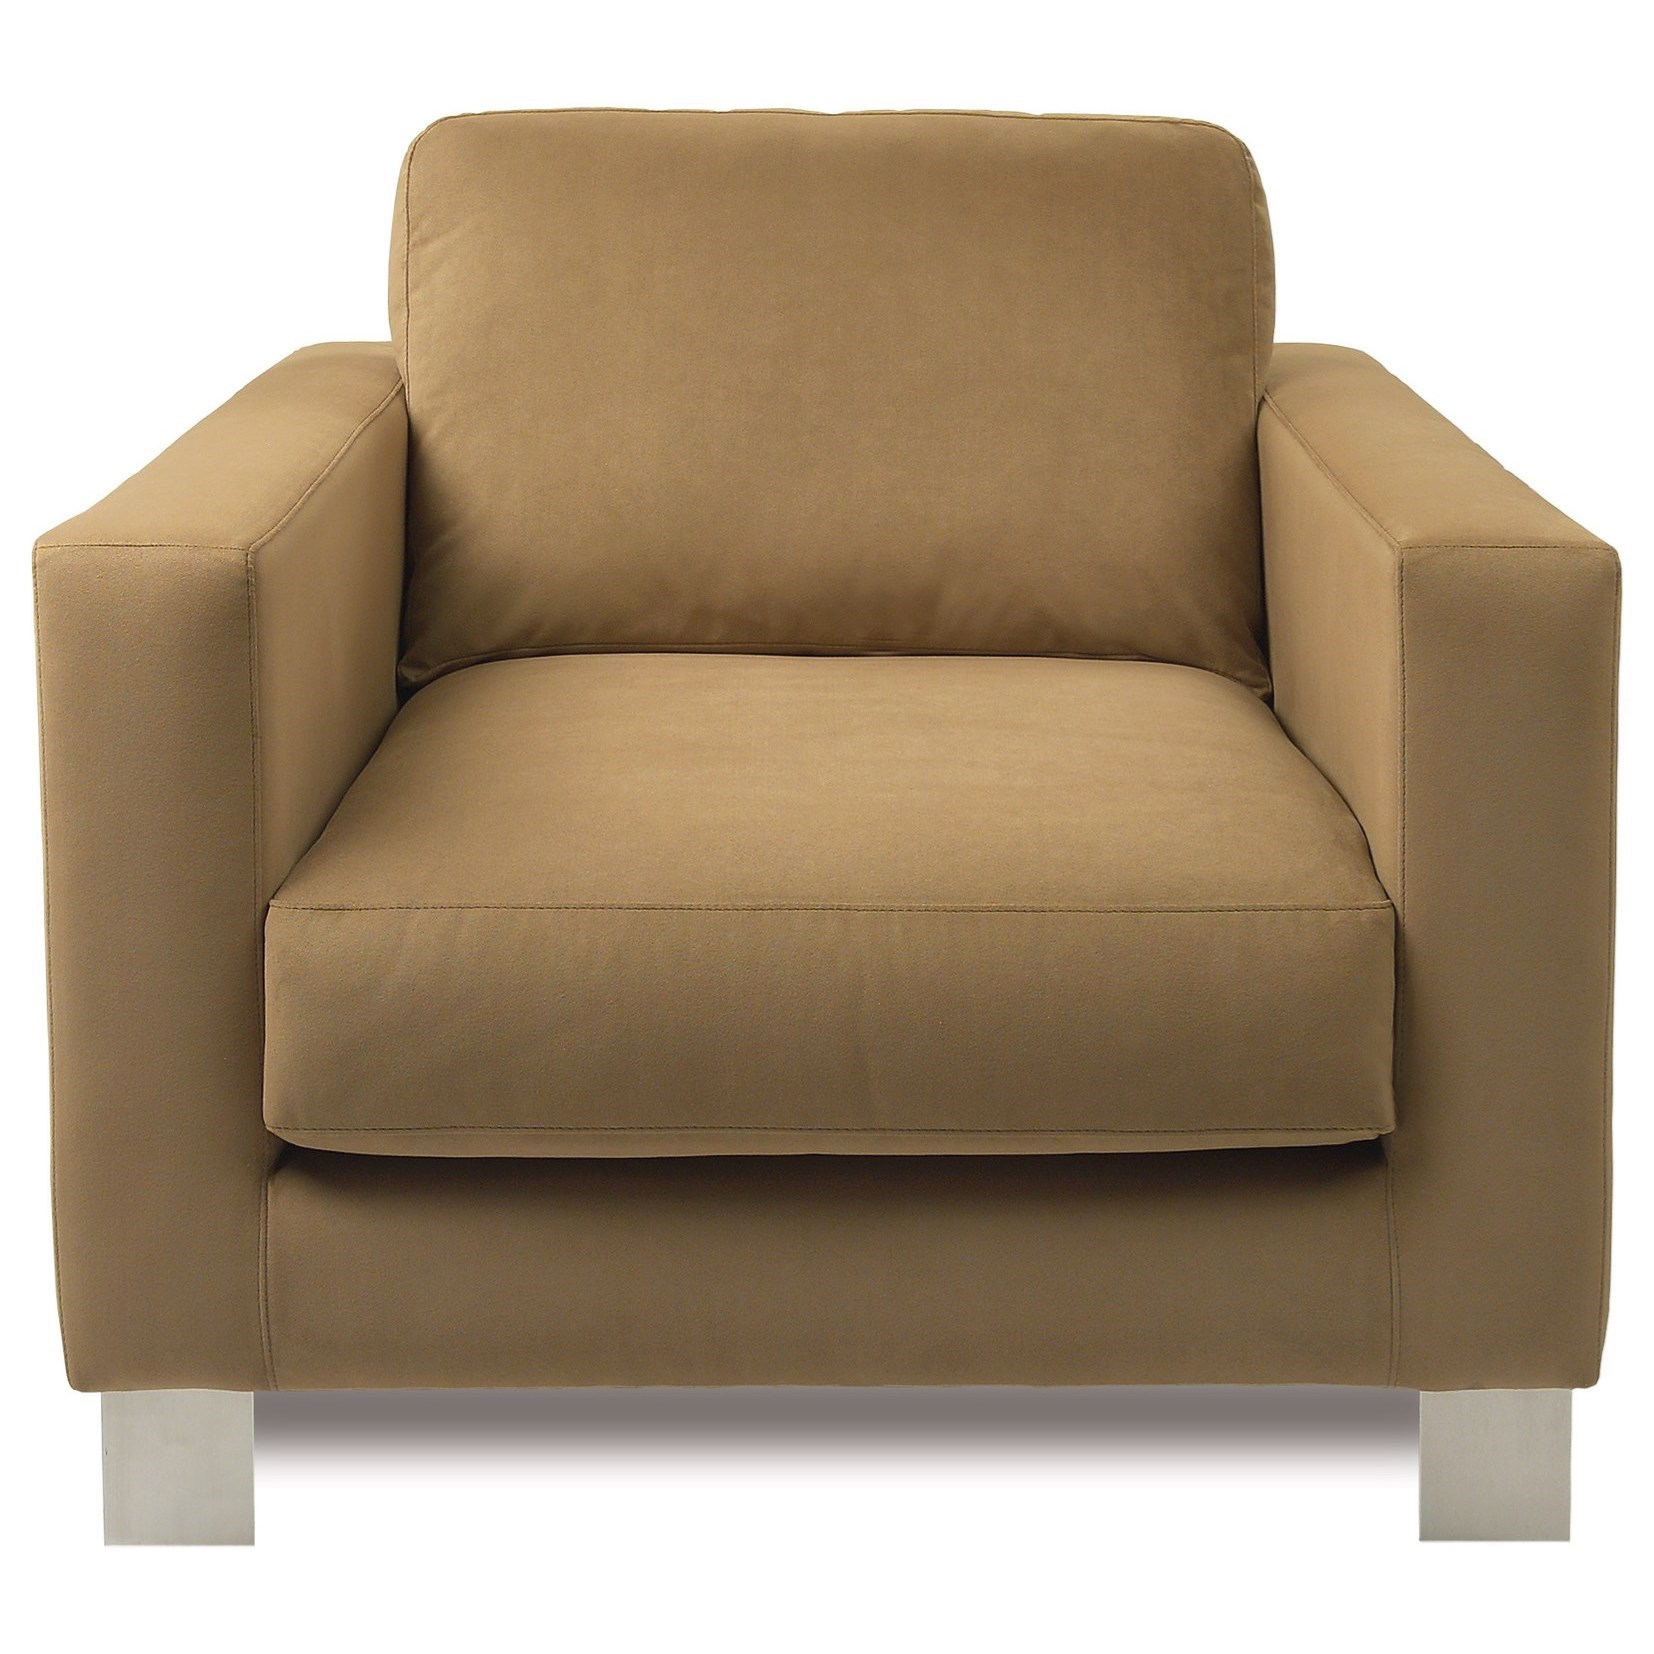 Alessandro Upholstered Chair by American Leather at Williams & Kay